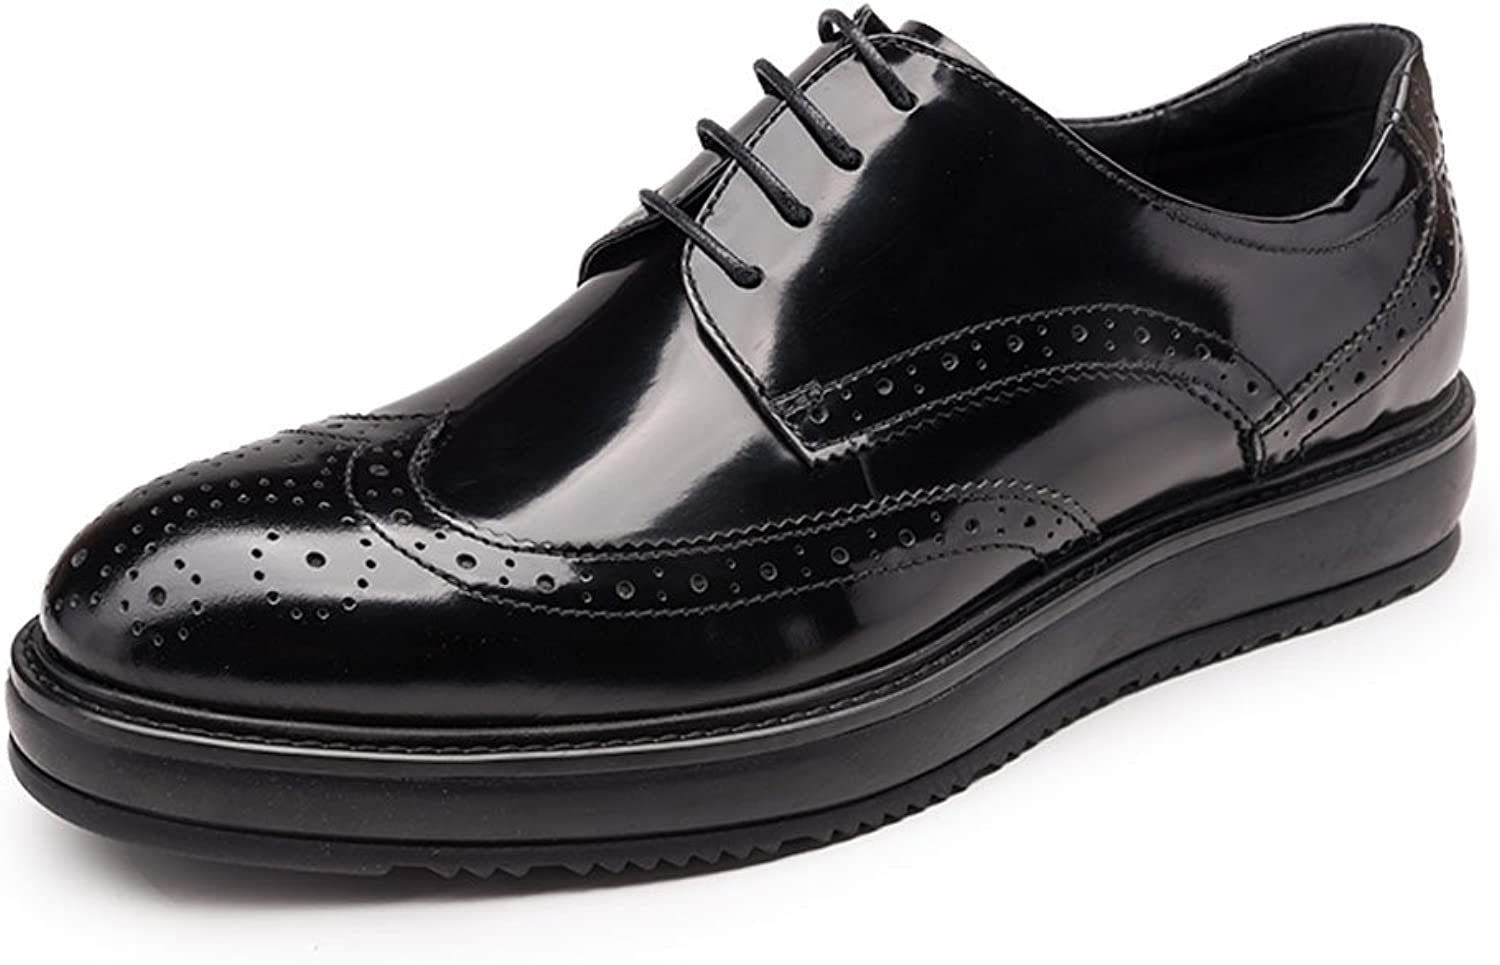 MedzRE Men's Wing Tip Dress Oxford shoes in Black Leather